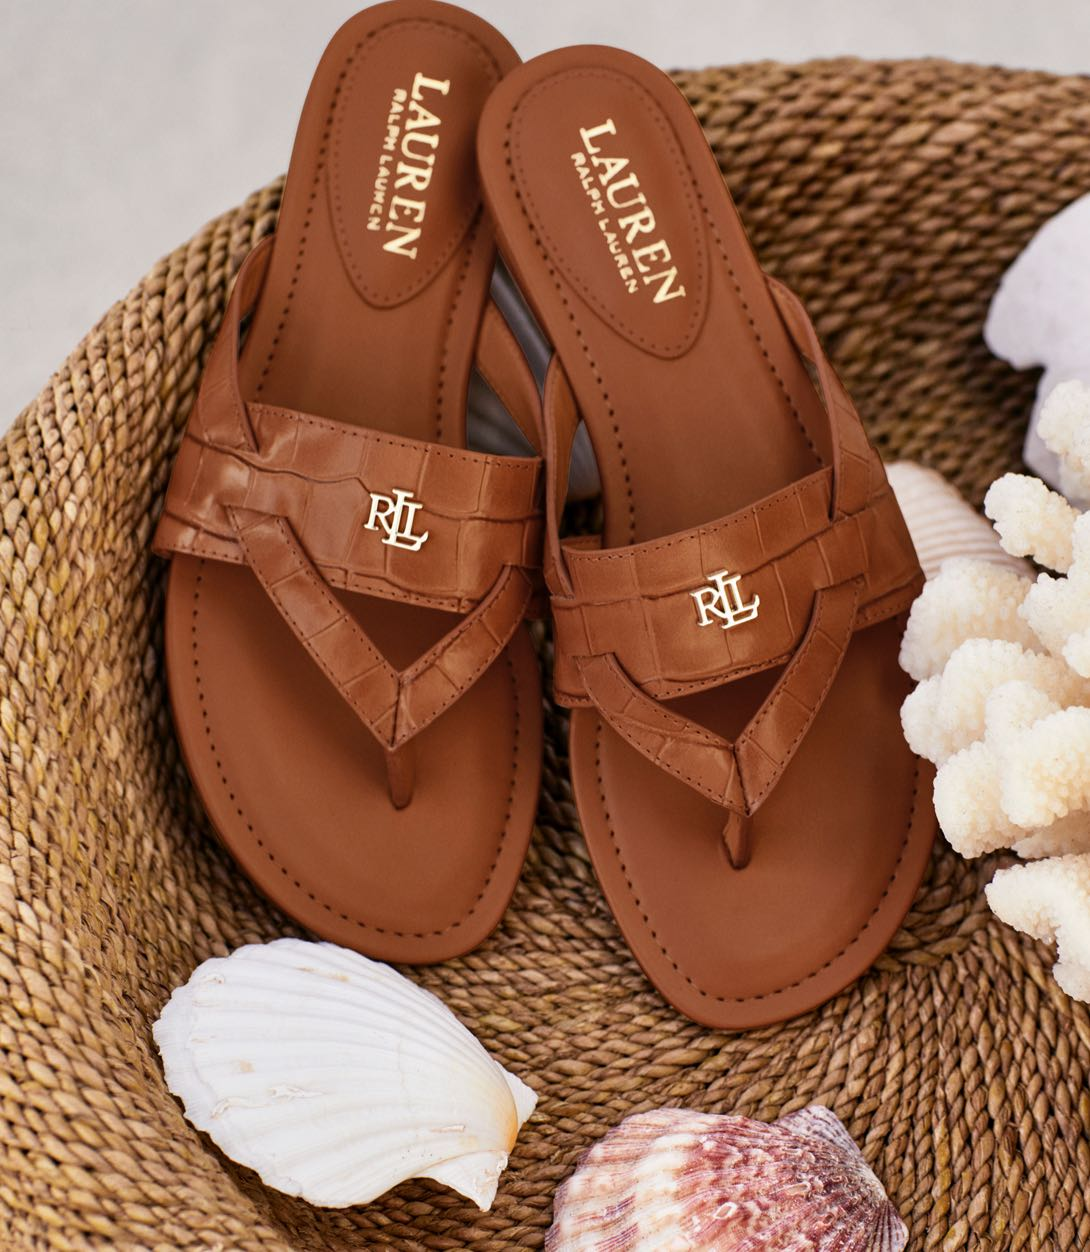 Tan leather thong sandals.